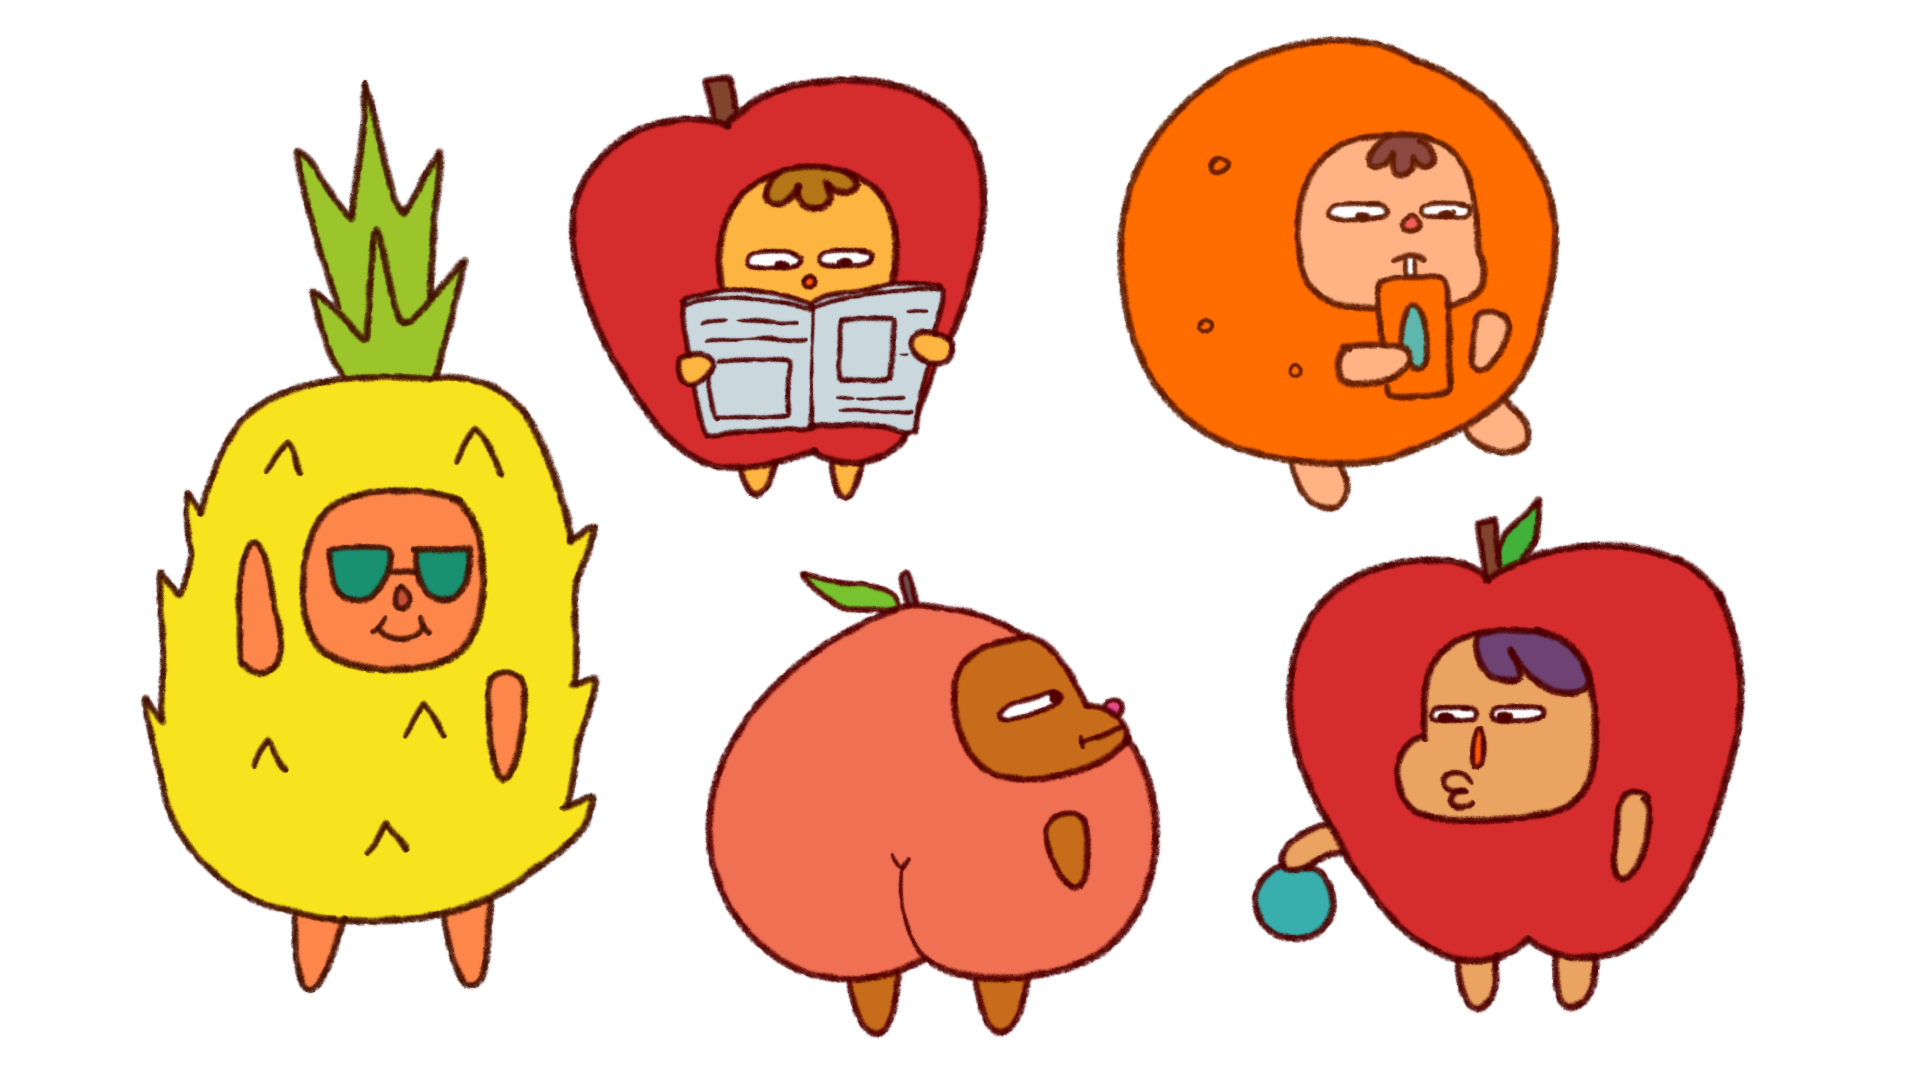 Thesis BG Characters - Fruits